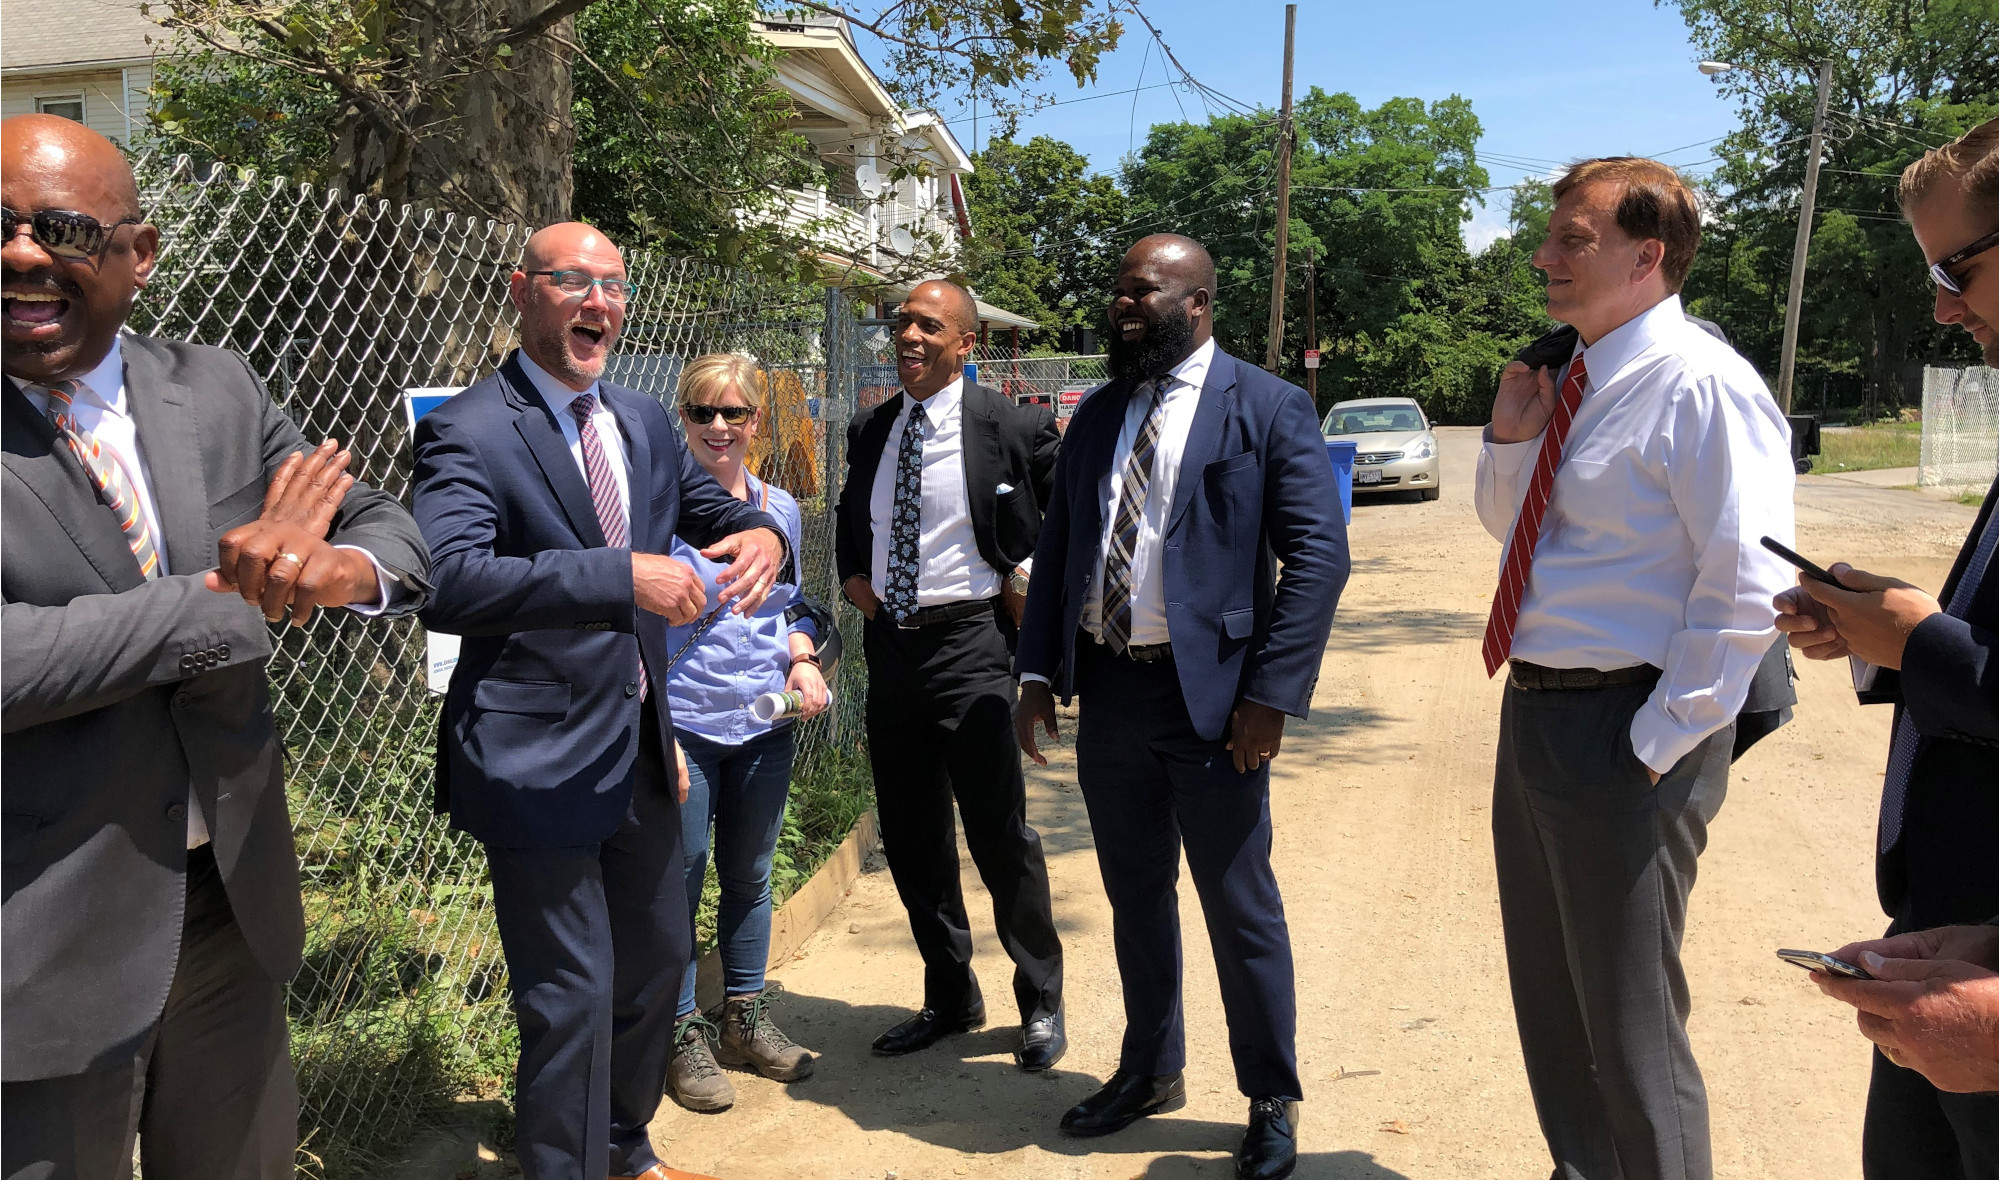 Executive Director Turner, Assistant Secretary Fleming, and Ja'Ron Smith, Deputy Assistant to the President, tour an Opportunity Zone project in Tremont, South Cleveland, OH